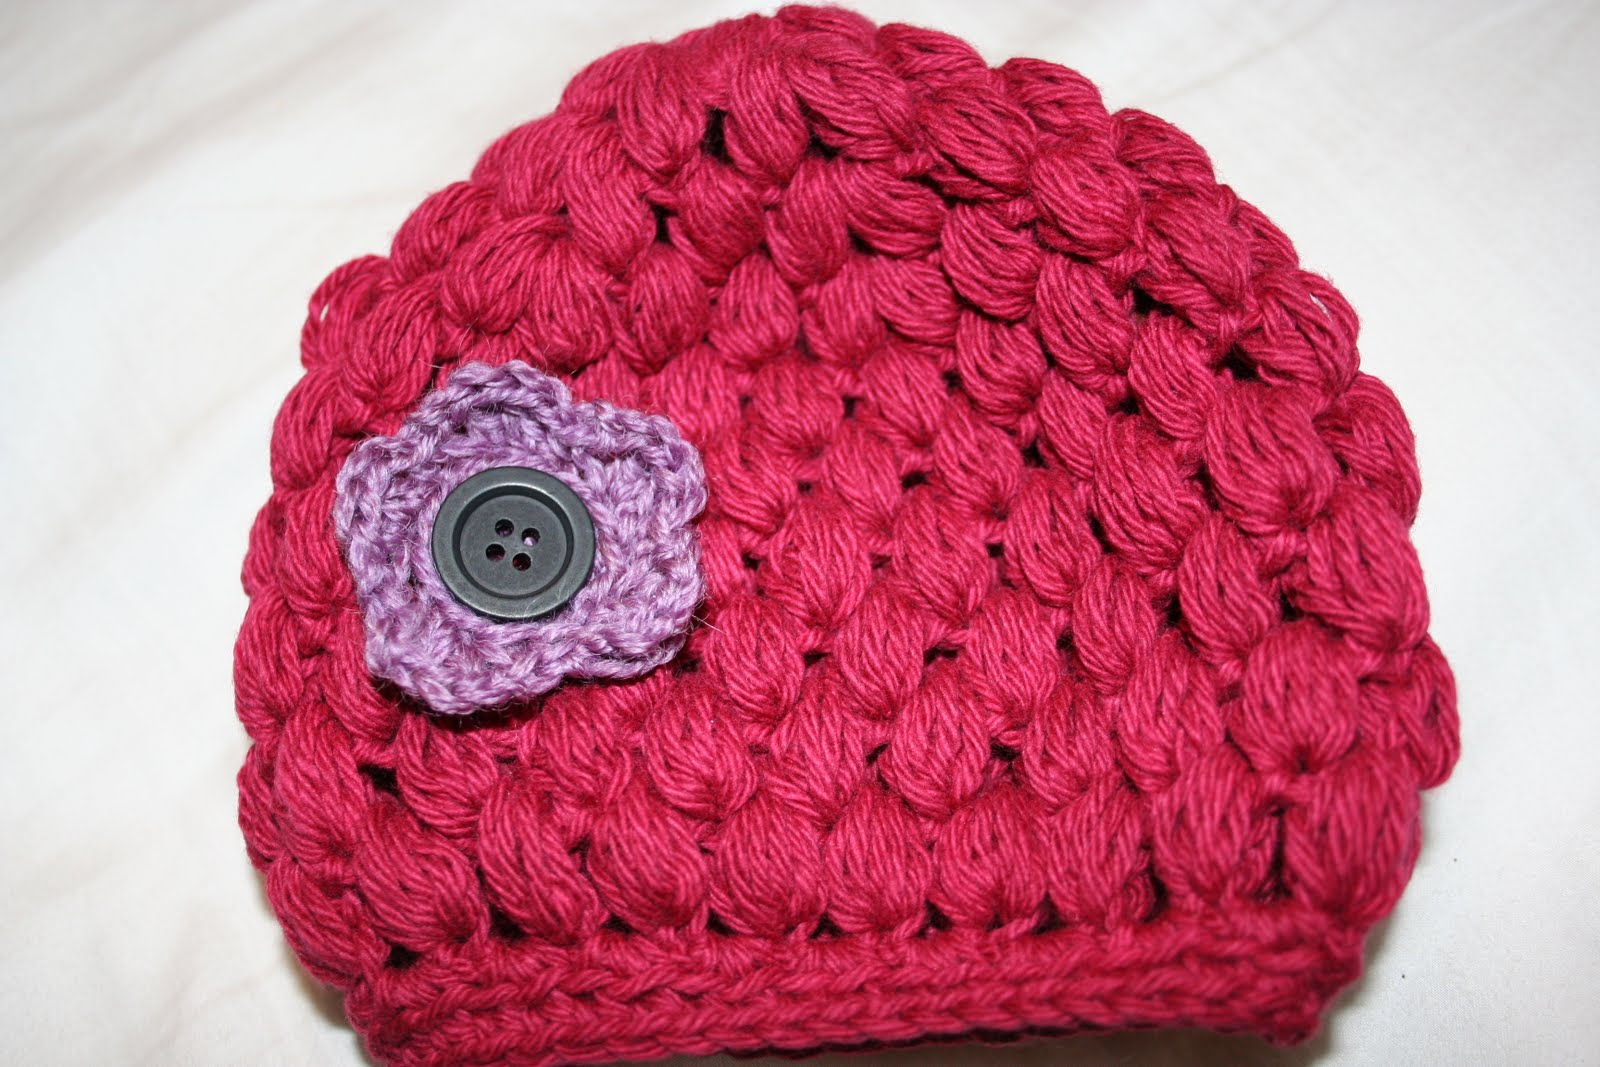 Crochet Stitches Baby Hats : the hat i think these are so cute on hats